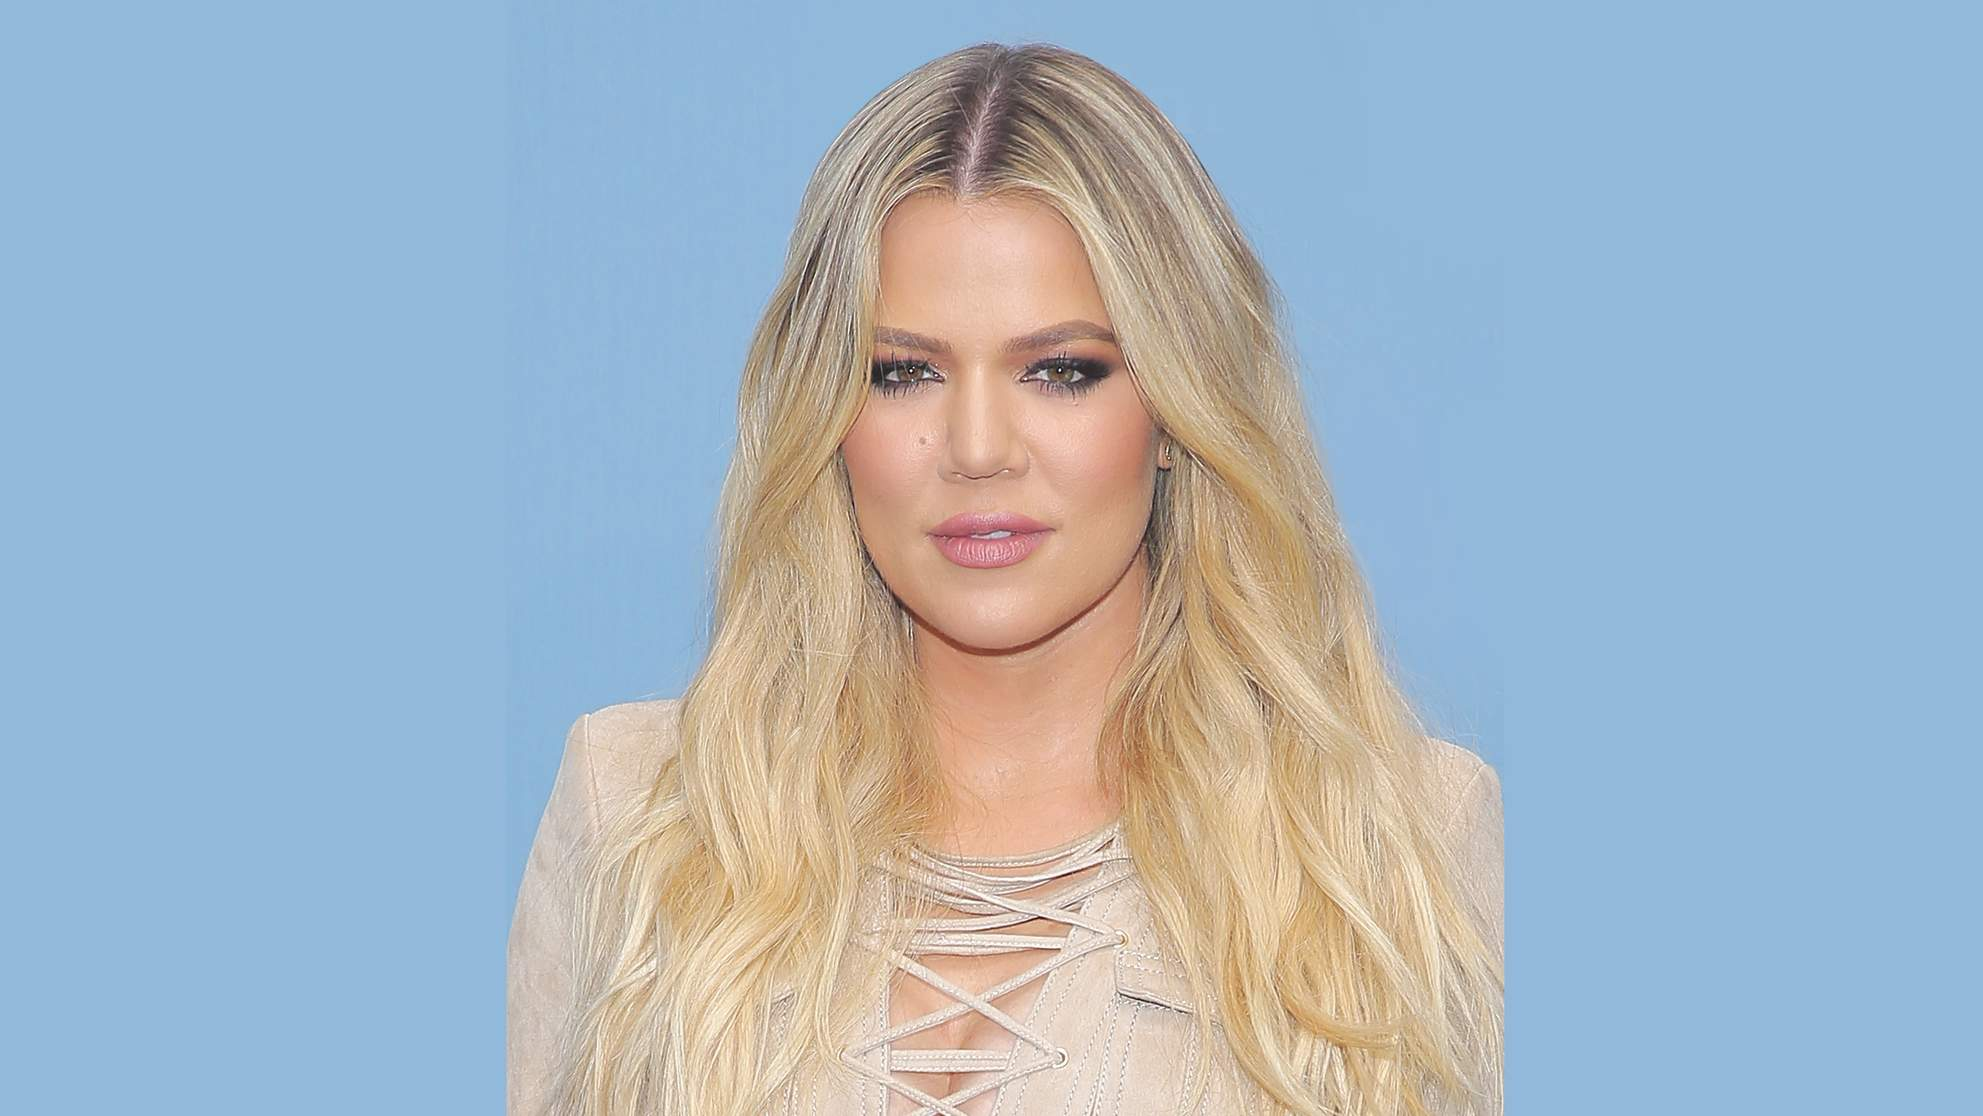 She's Due Next! Pregnant Khloé Kardashian Shares New 29-Week Baby Bump Photo